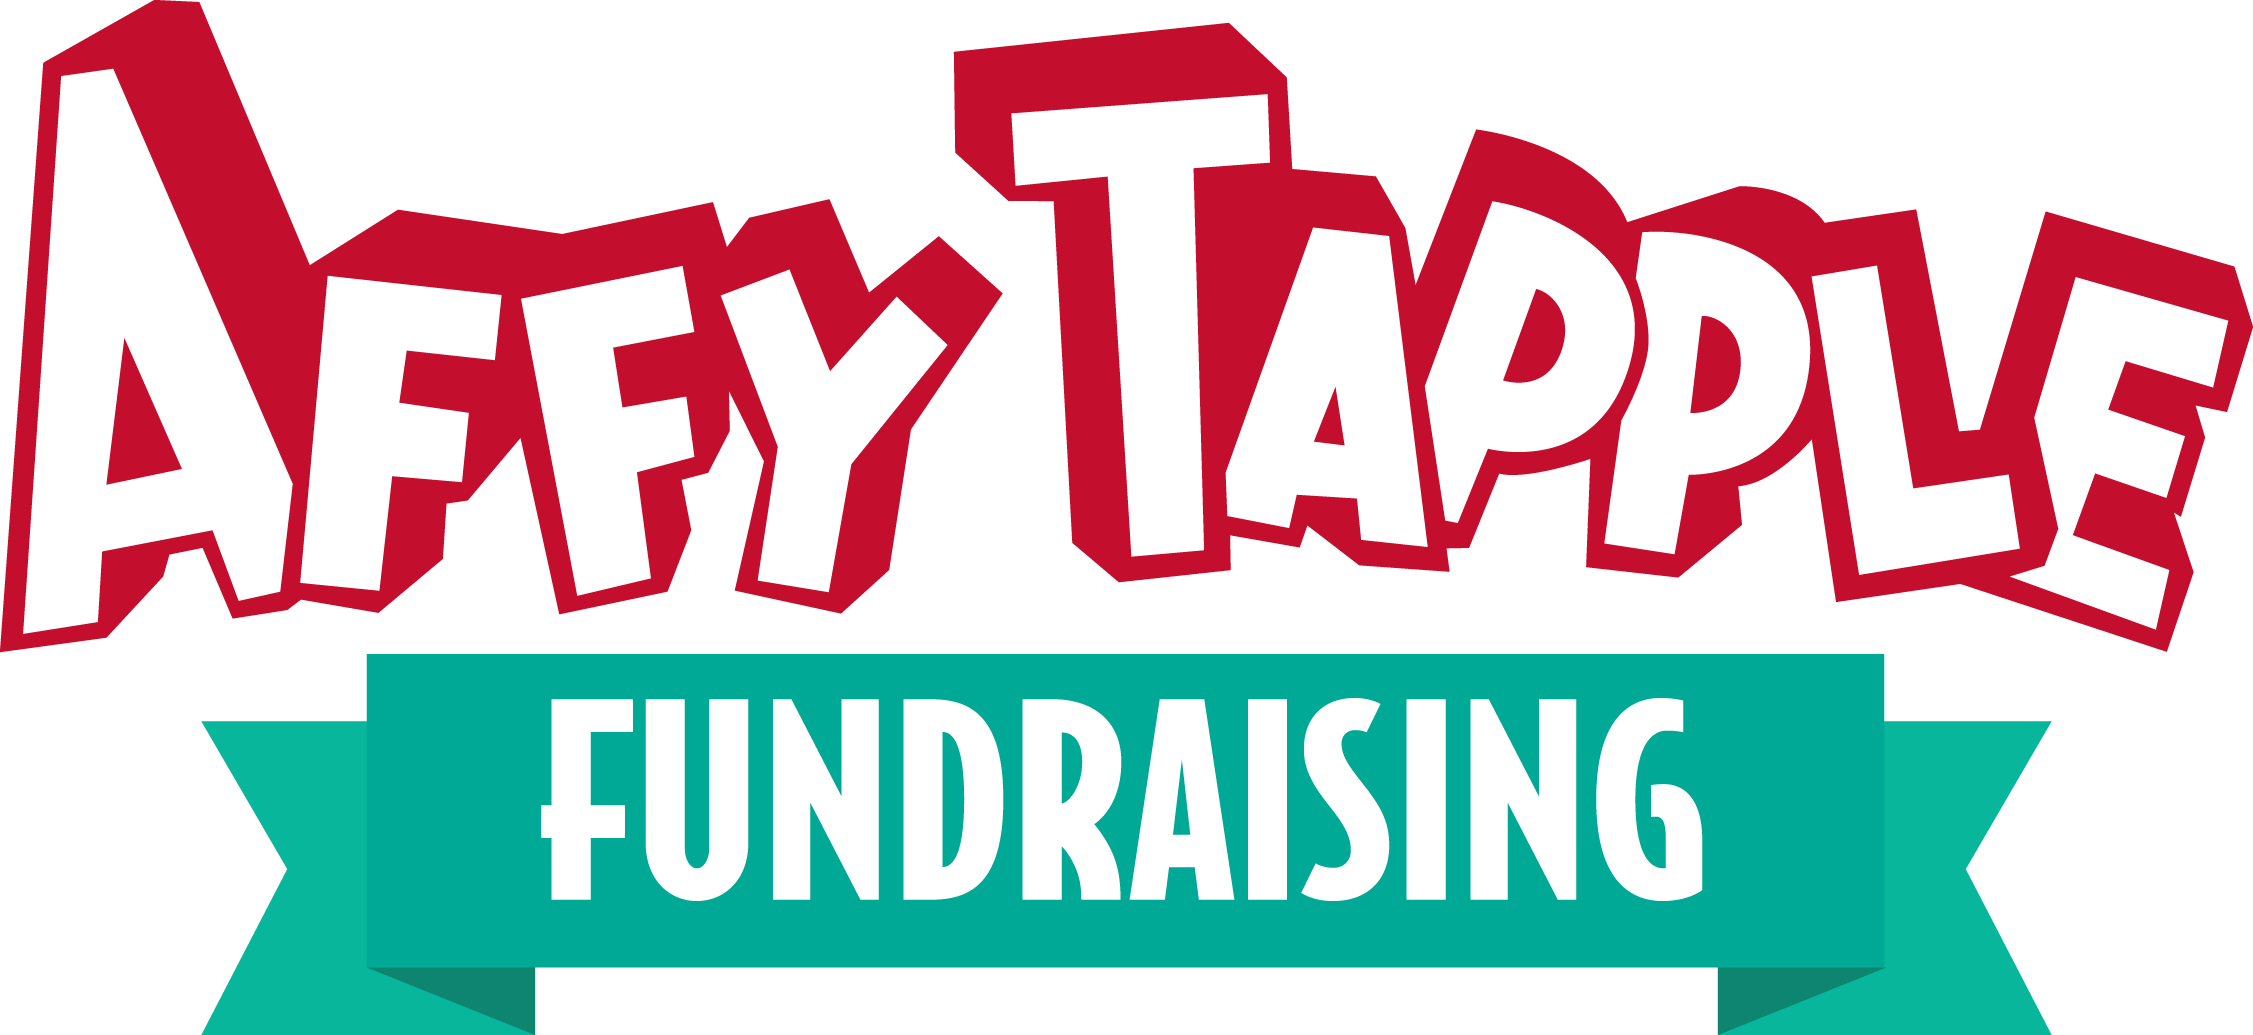 Fundraising - Affy Tapple